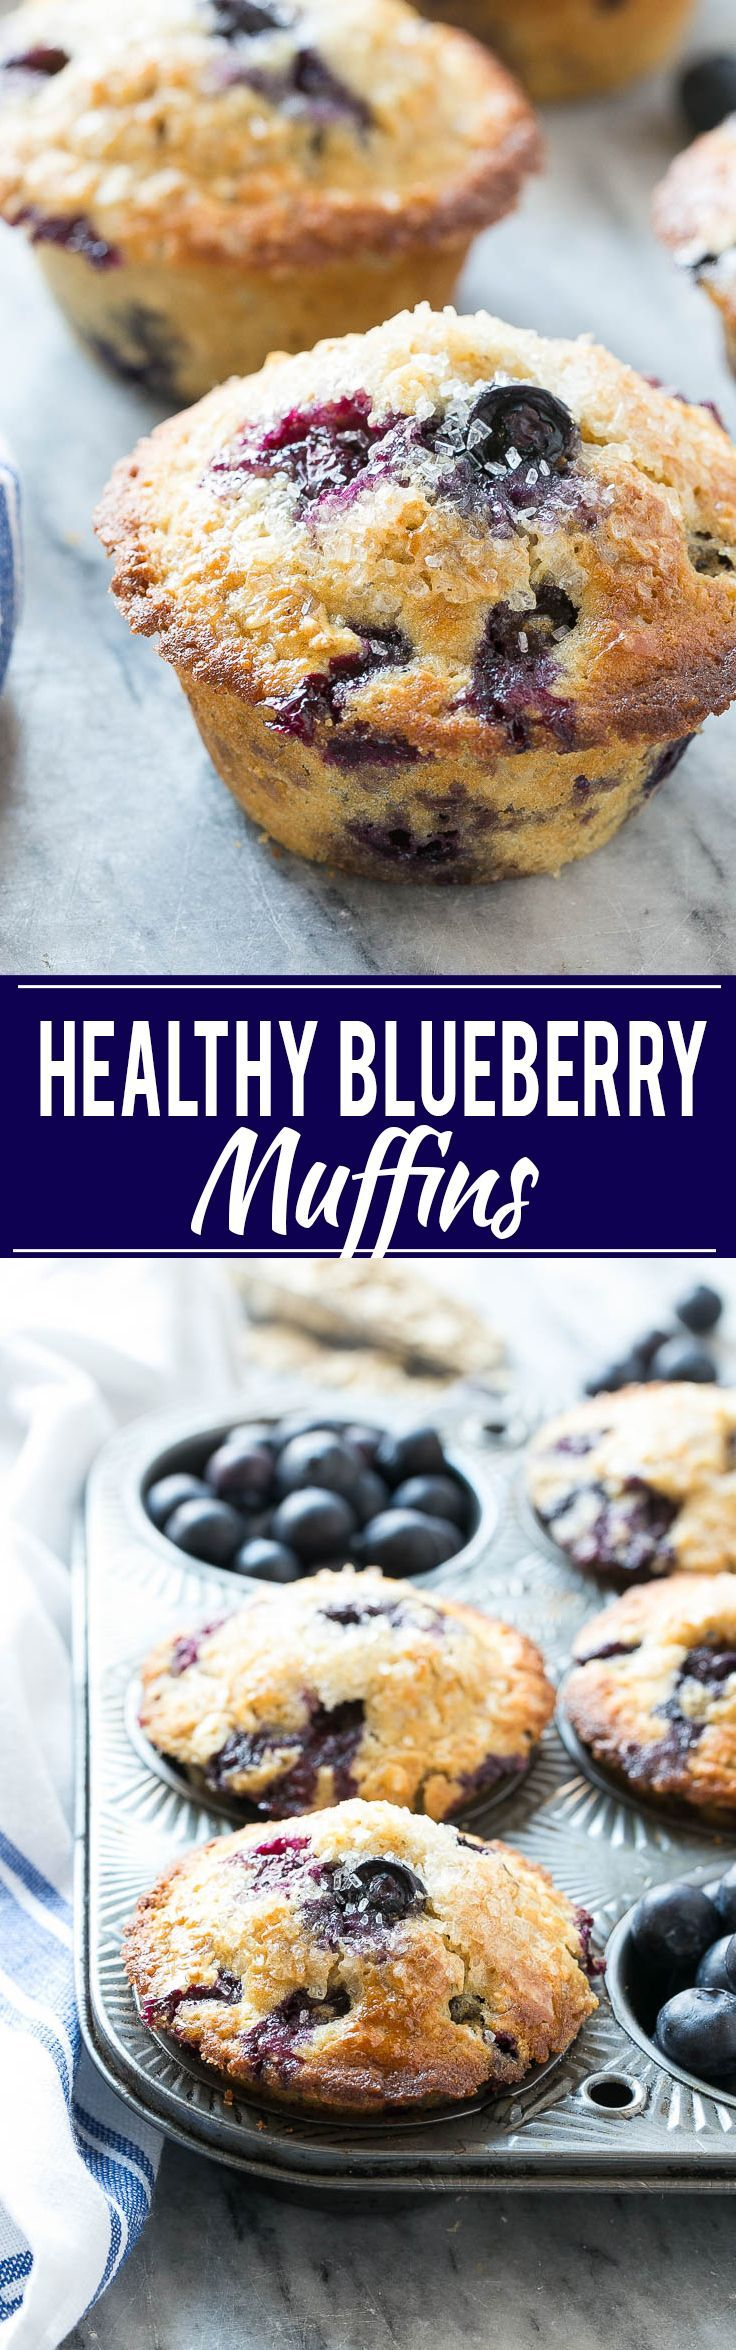 These Healthy Blueberry Muffins Are Made With Whole Wheat Flour And Oatmeal For Added Nutrition But They Still Blueberry Recipes Healthy Baking Healthy Sweets